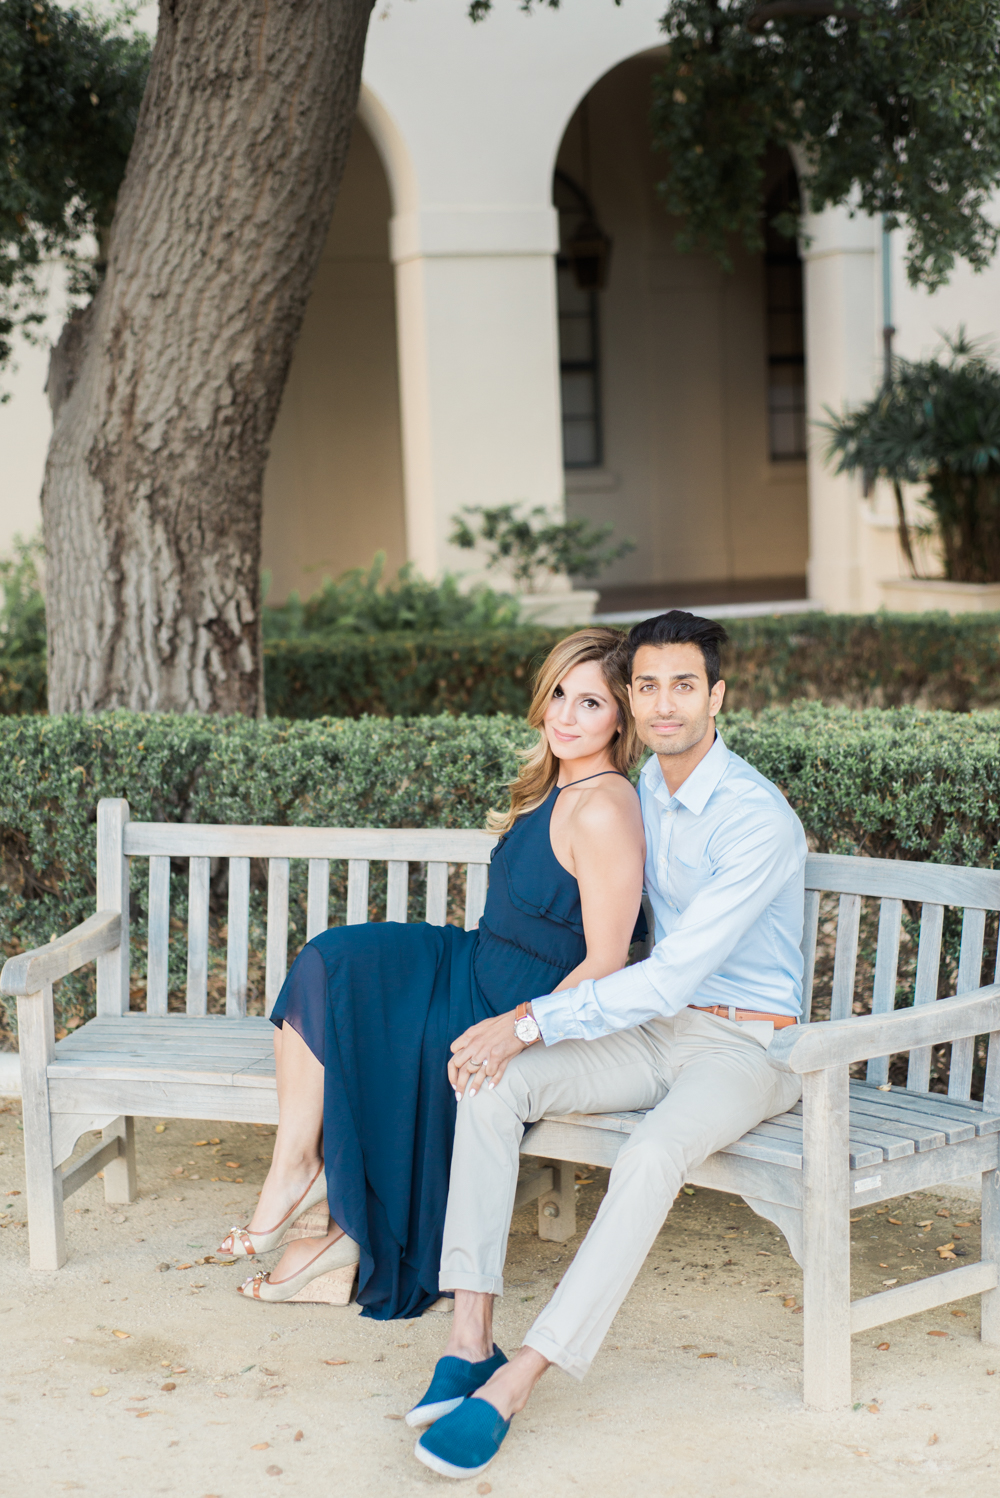 pasadena_city_hall_engagement_session_los_angeles_wedding_photography-12.jpg